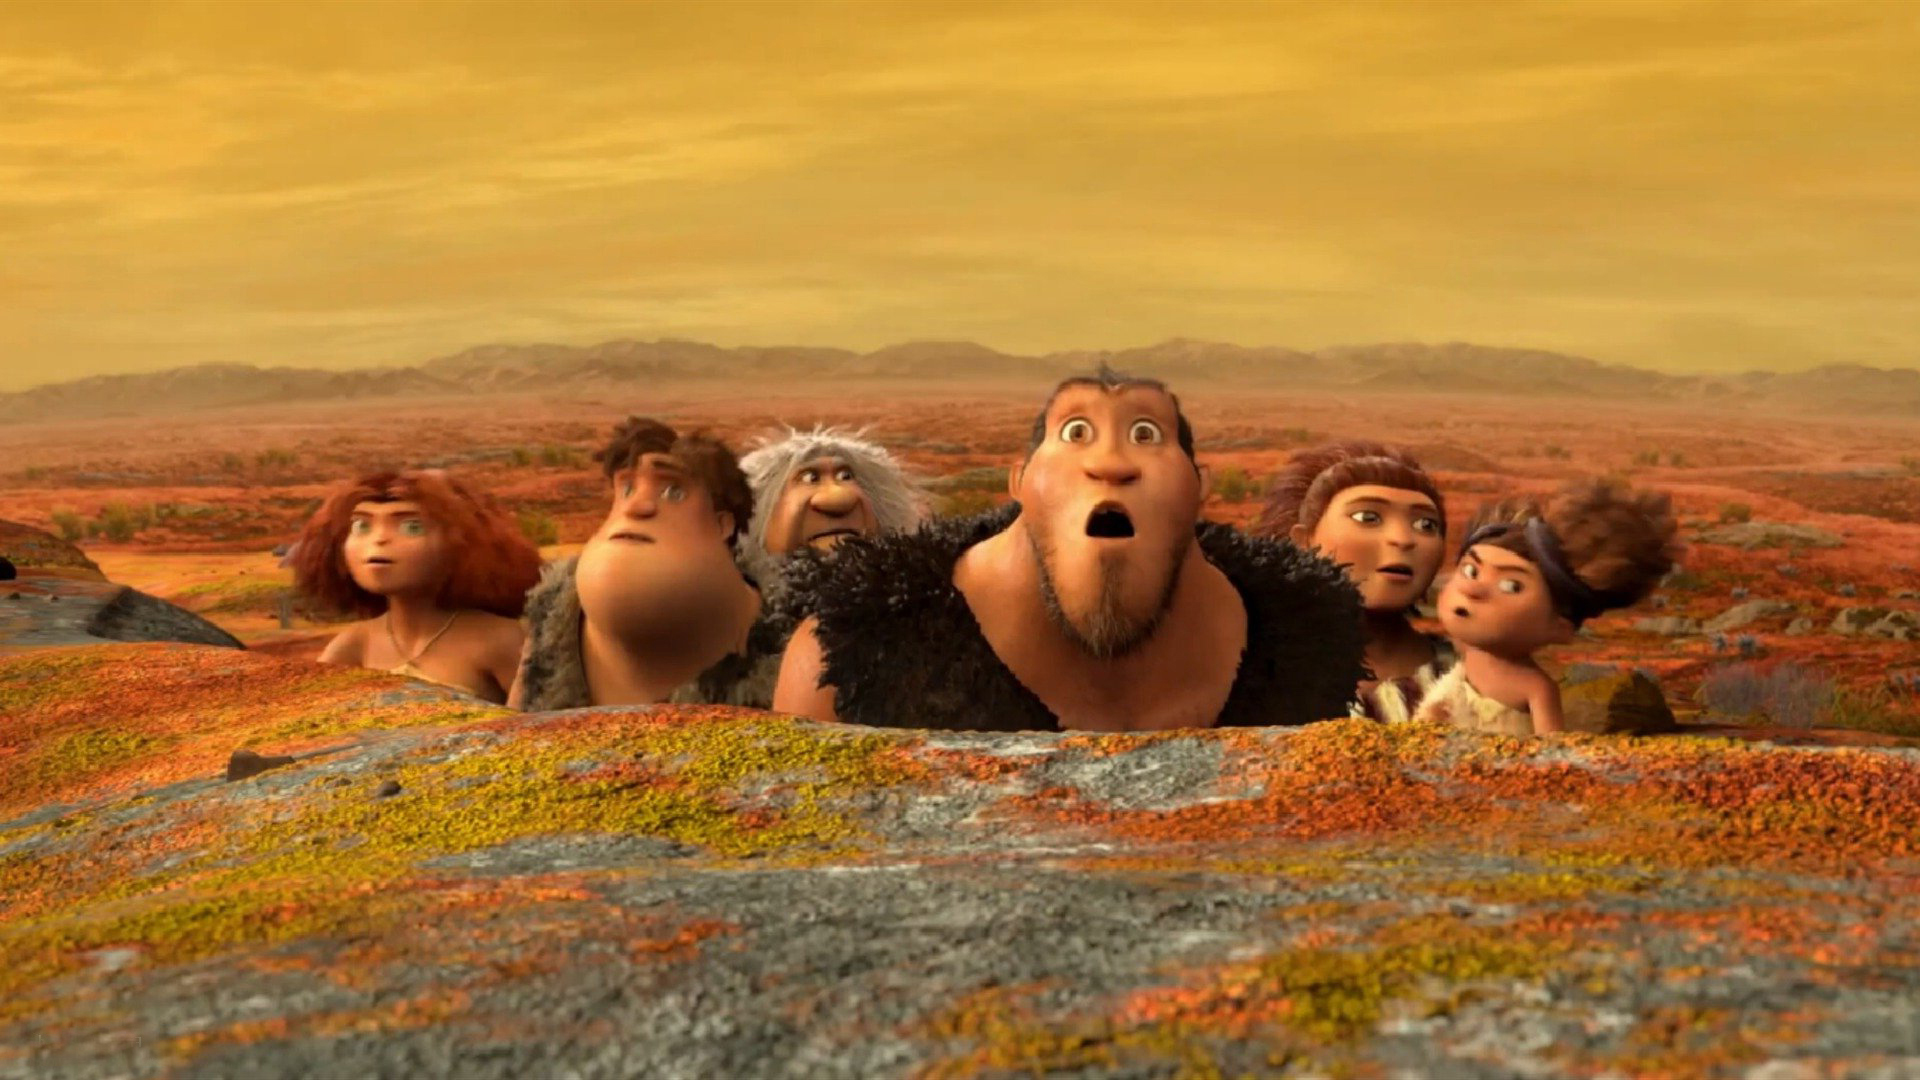 The Croods Wallpapers High Quality Download Free